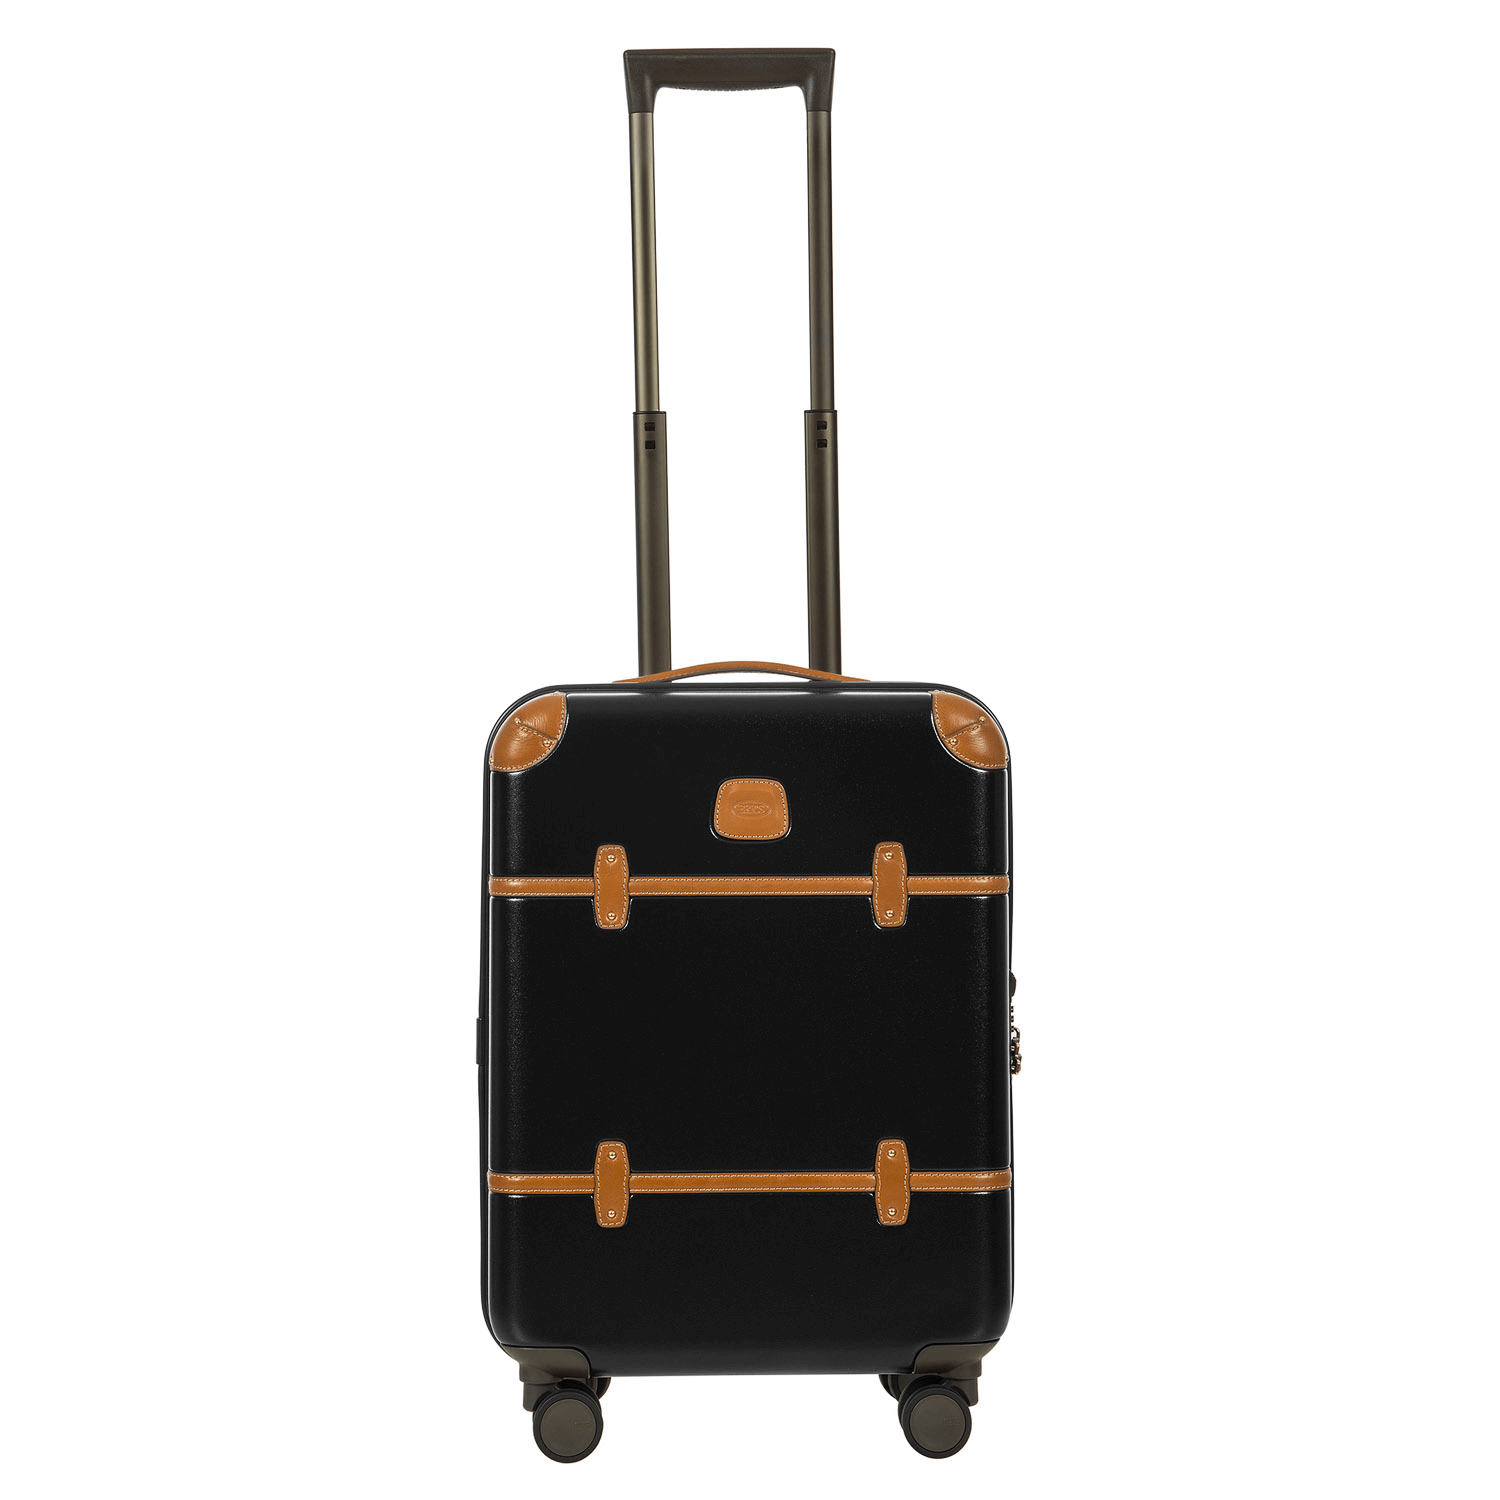 "Black Bellagio 21"" Carry-On Spinner BRIC'S Luggage"